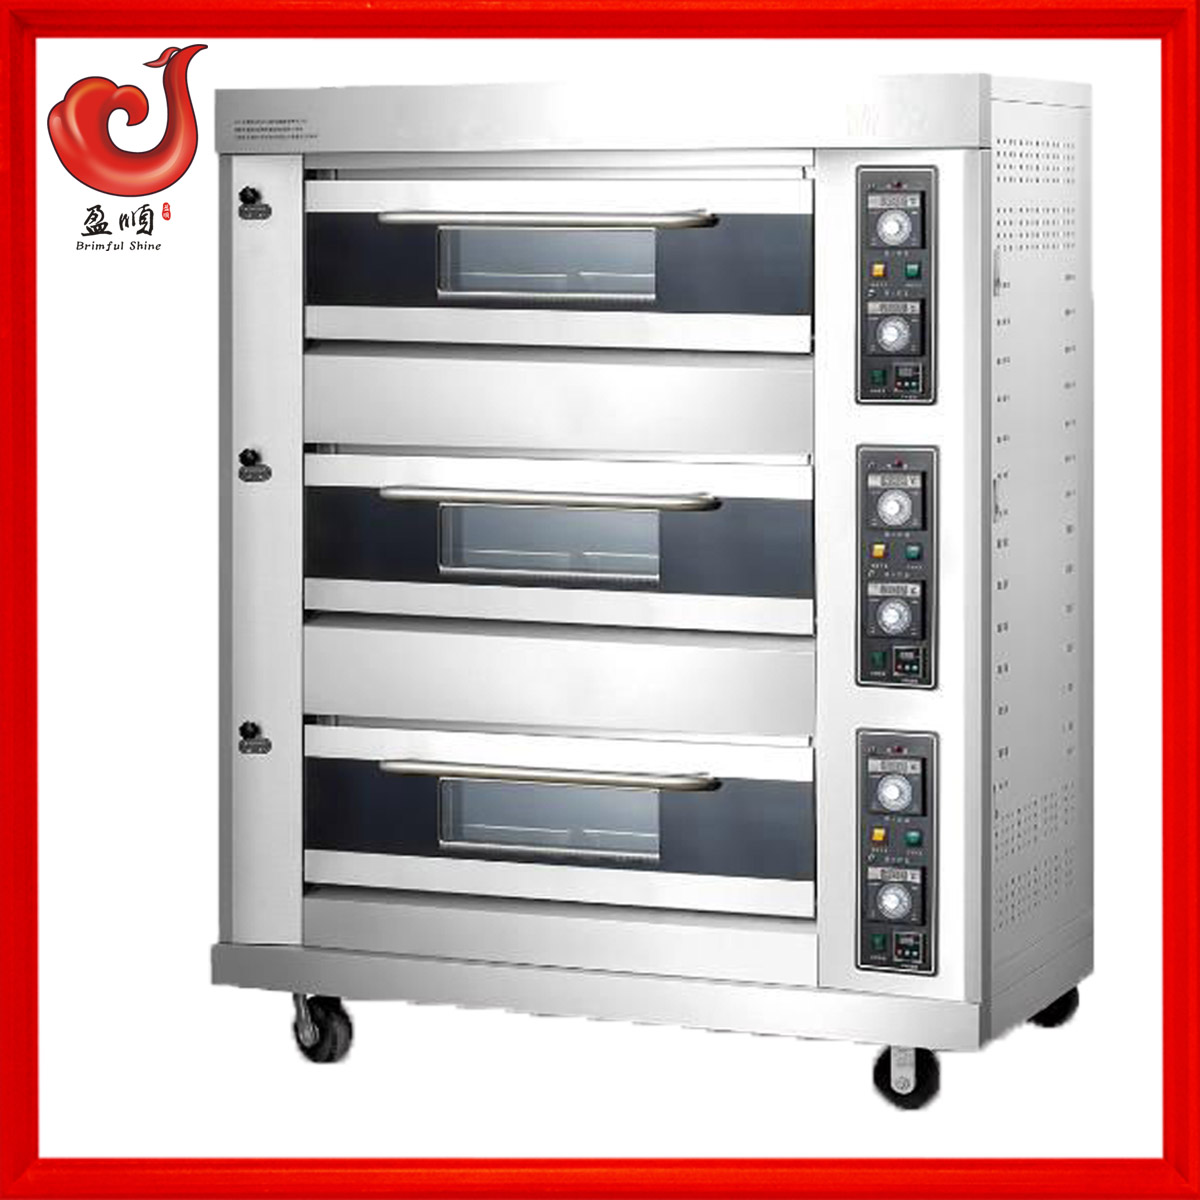 2014 new industrial rotisserie oven